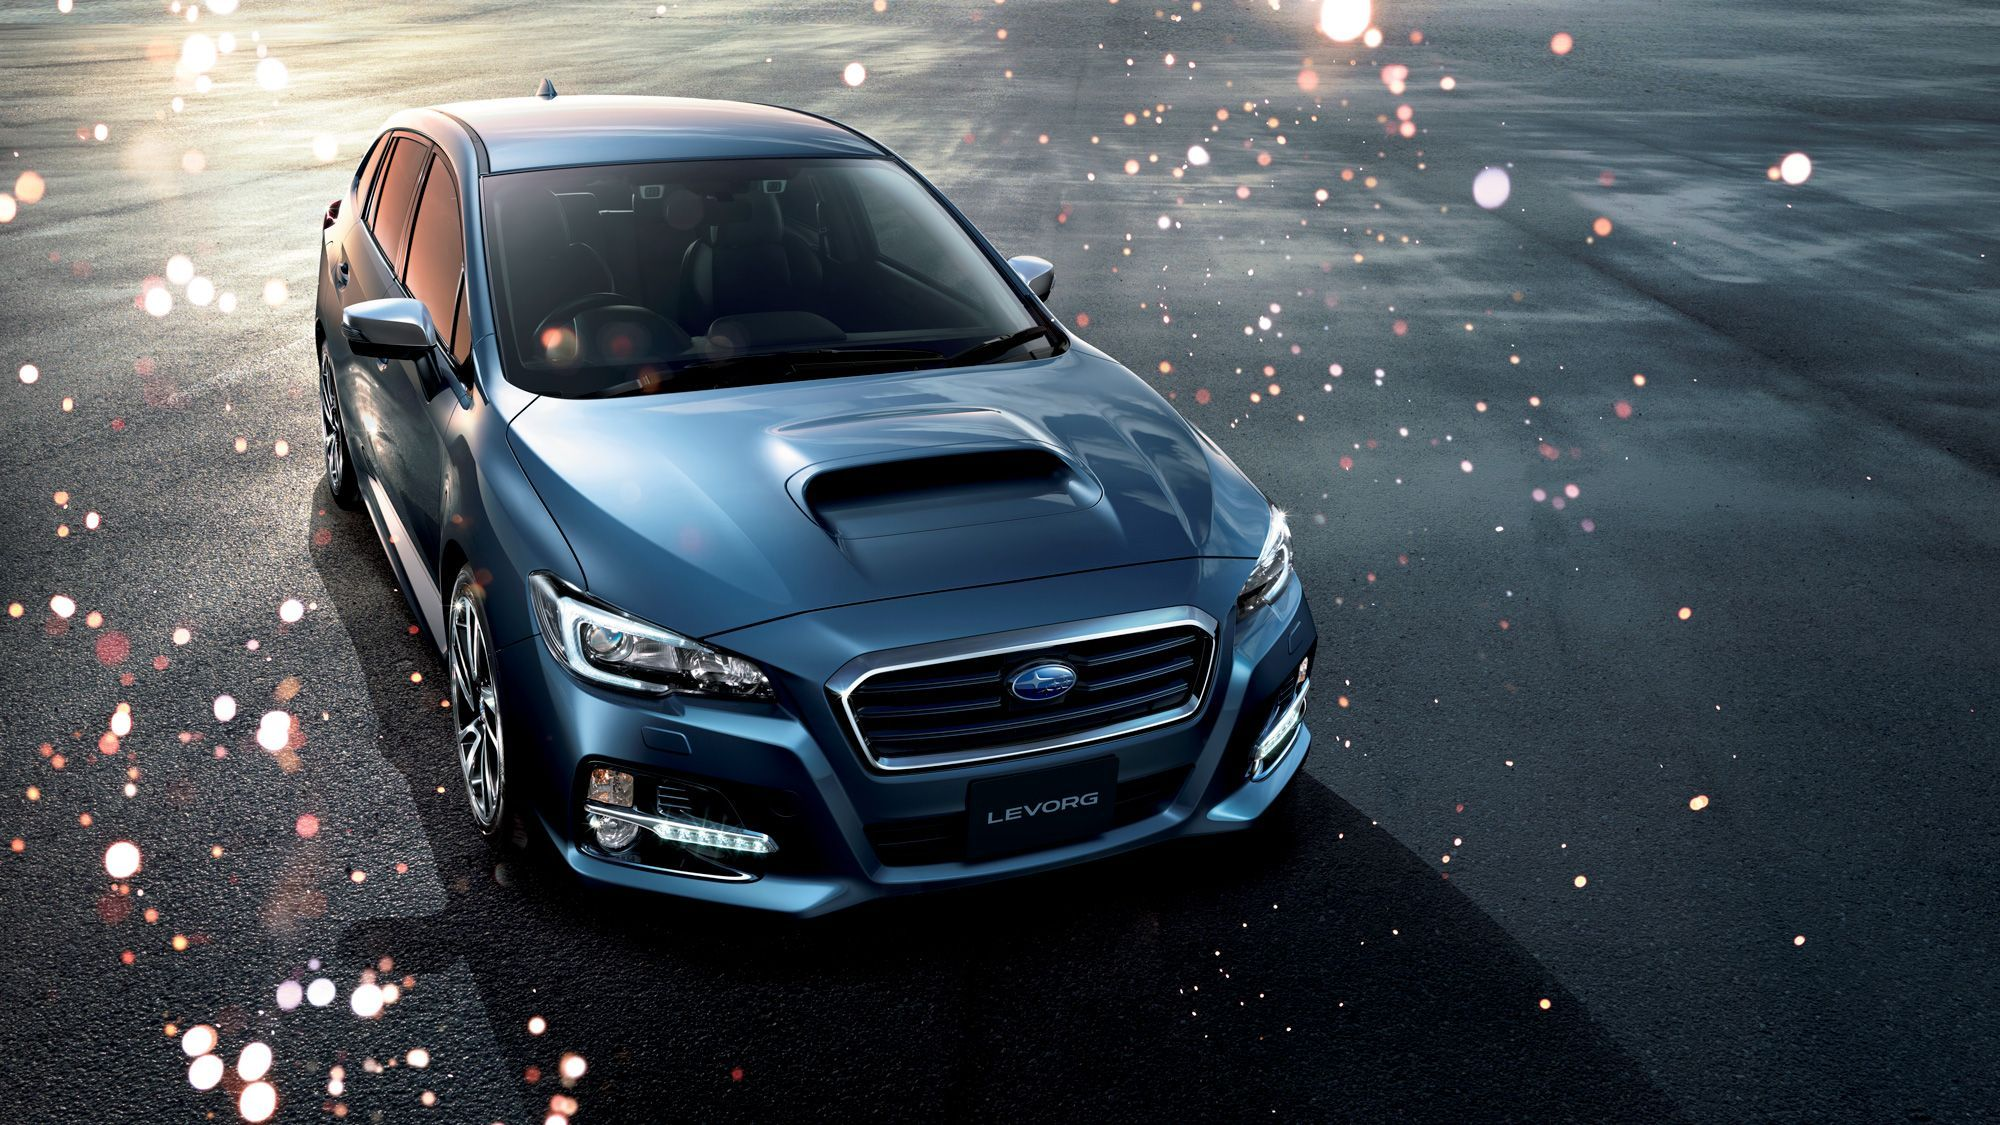 Cool Subaru Levorg Hd Wallpaper Cool Hd Wallpapers From Photos Of